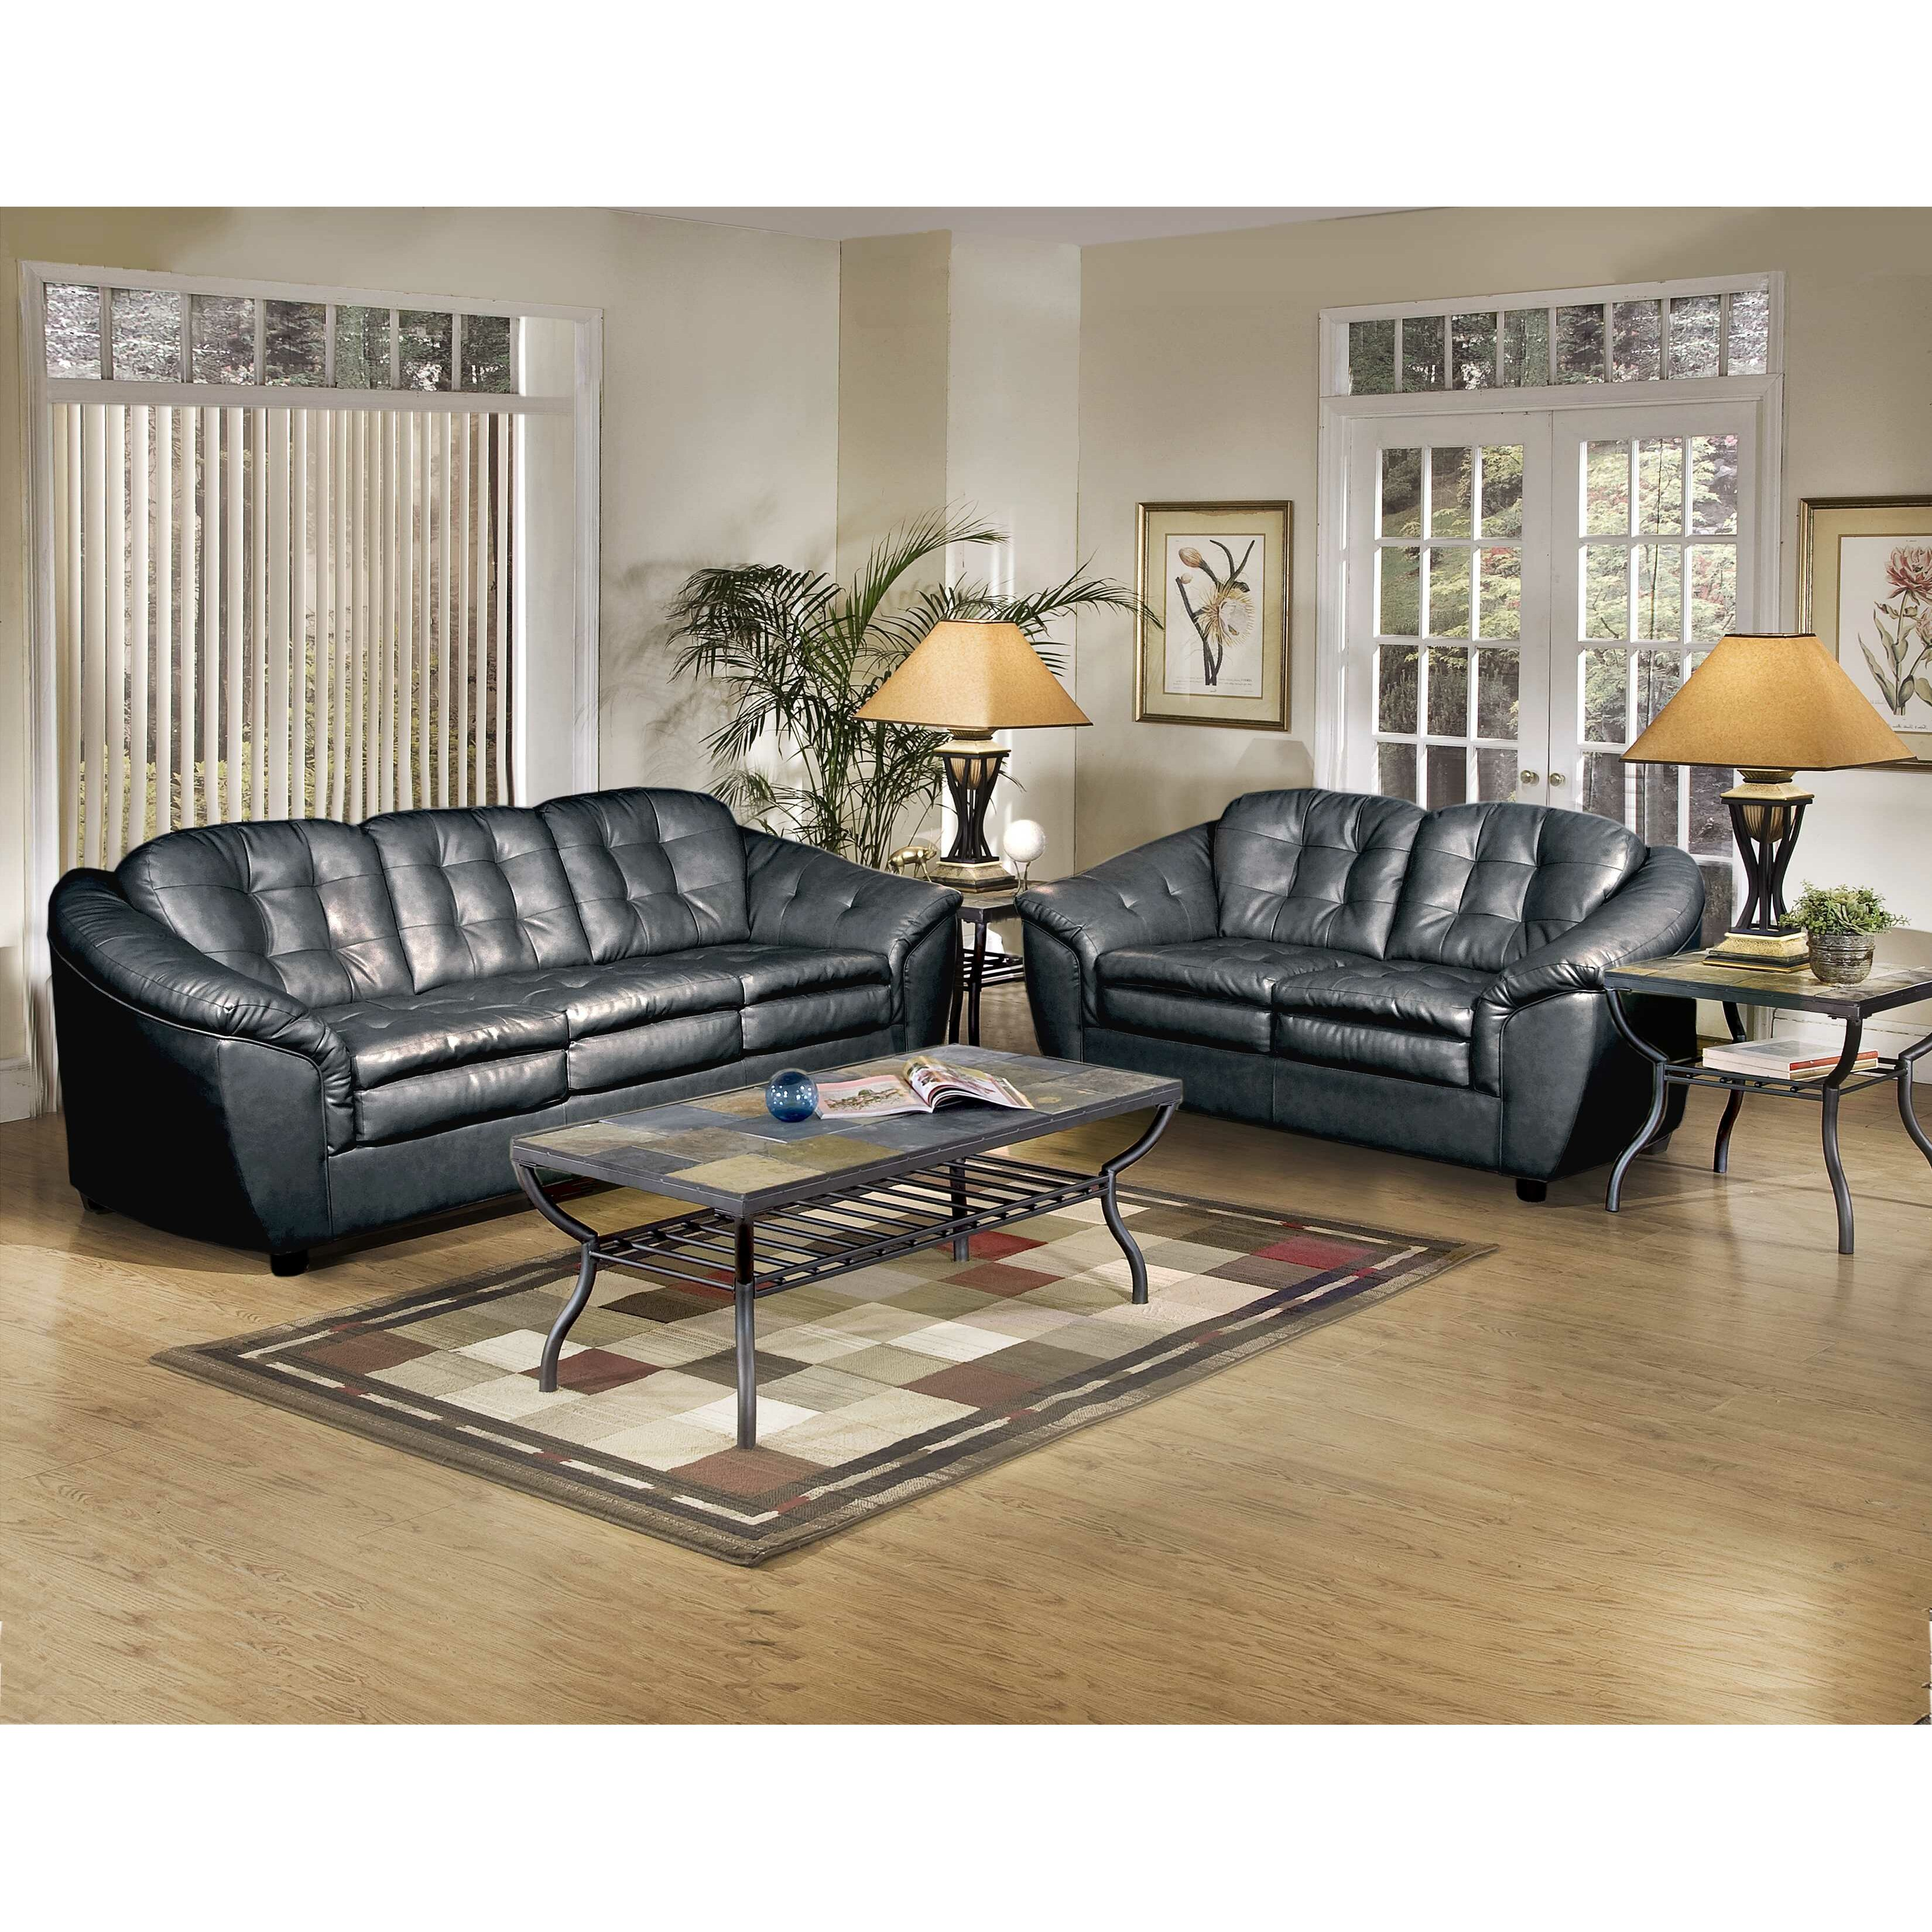 Superior Serta Upholstery Living Room Collection Wayfair 951 83. 16 Best Sectional  Sofa Collection Images On Part 10